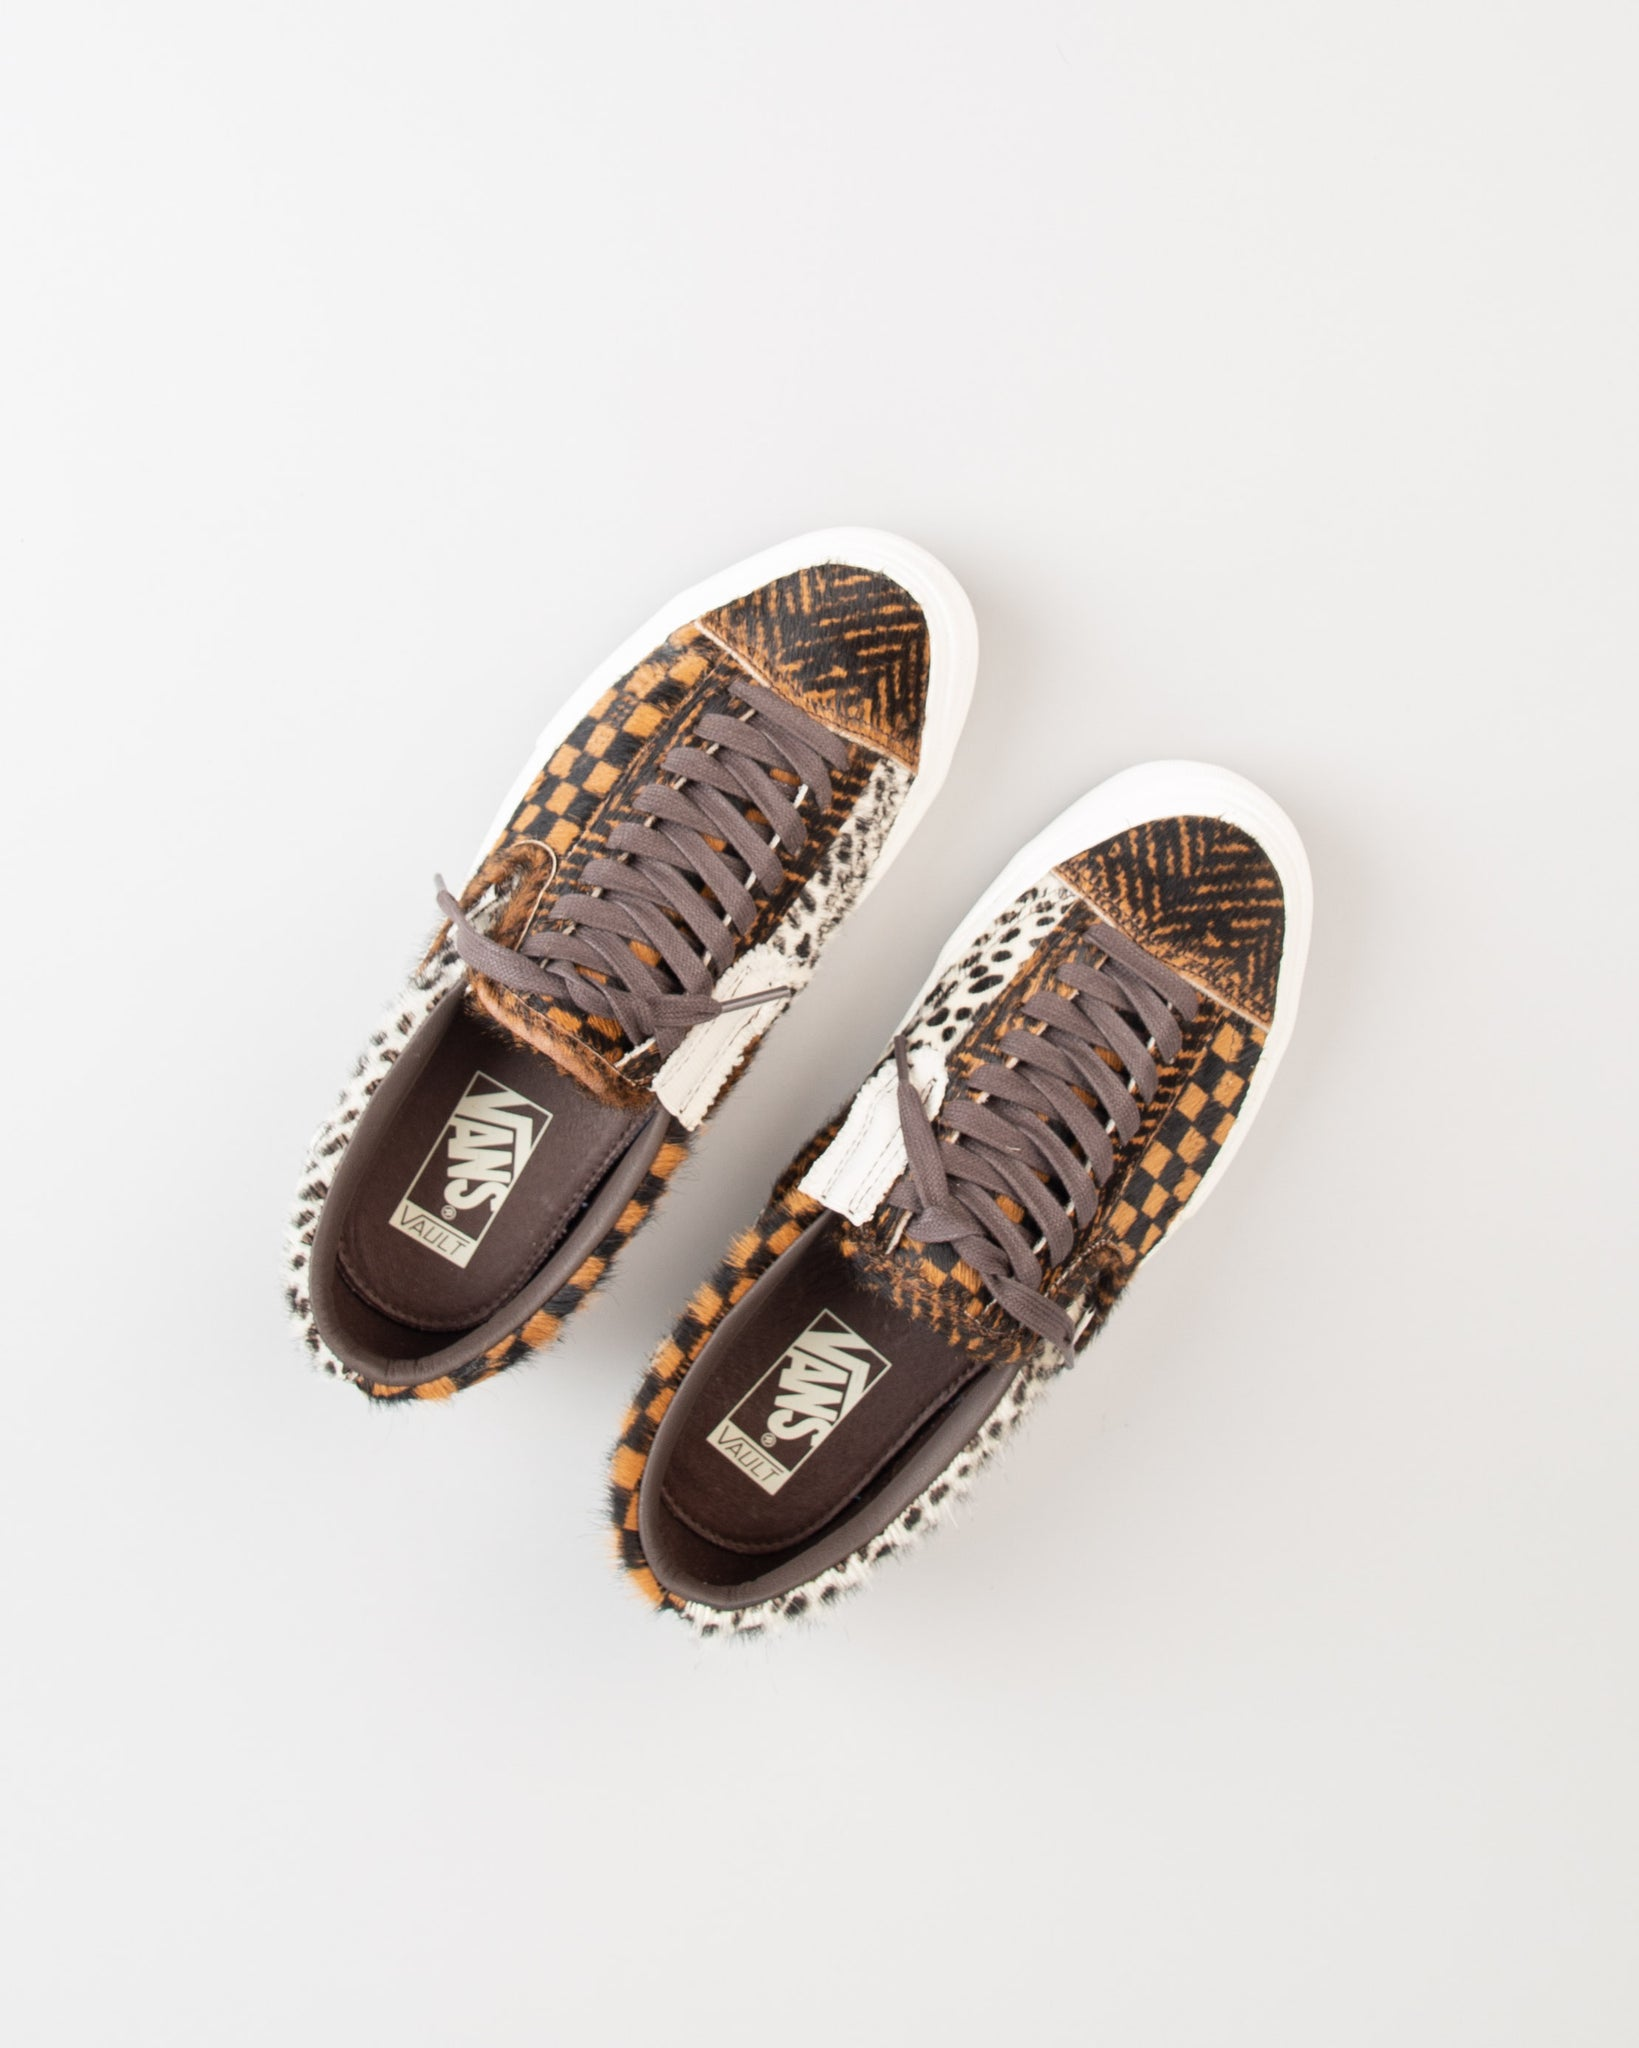 Slip-On Cap LX (PONY) Multi/Marshmallow